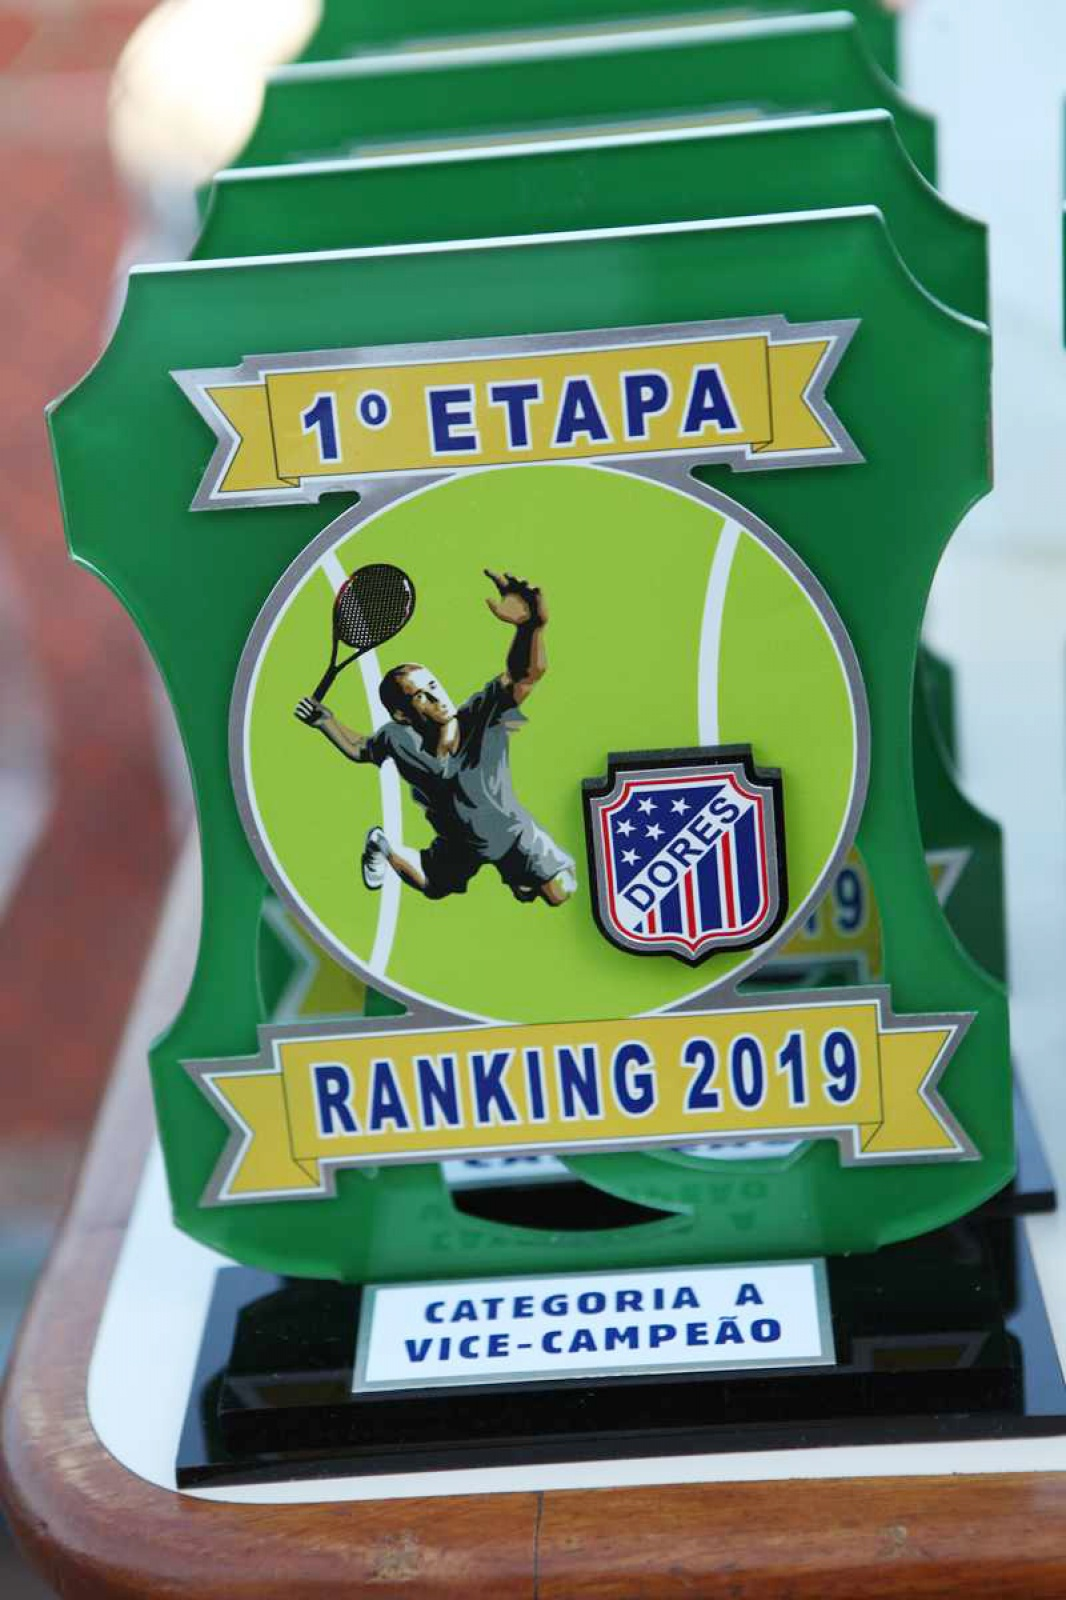 1ª Etapa do Ranking 2019 de Tênis